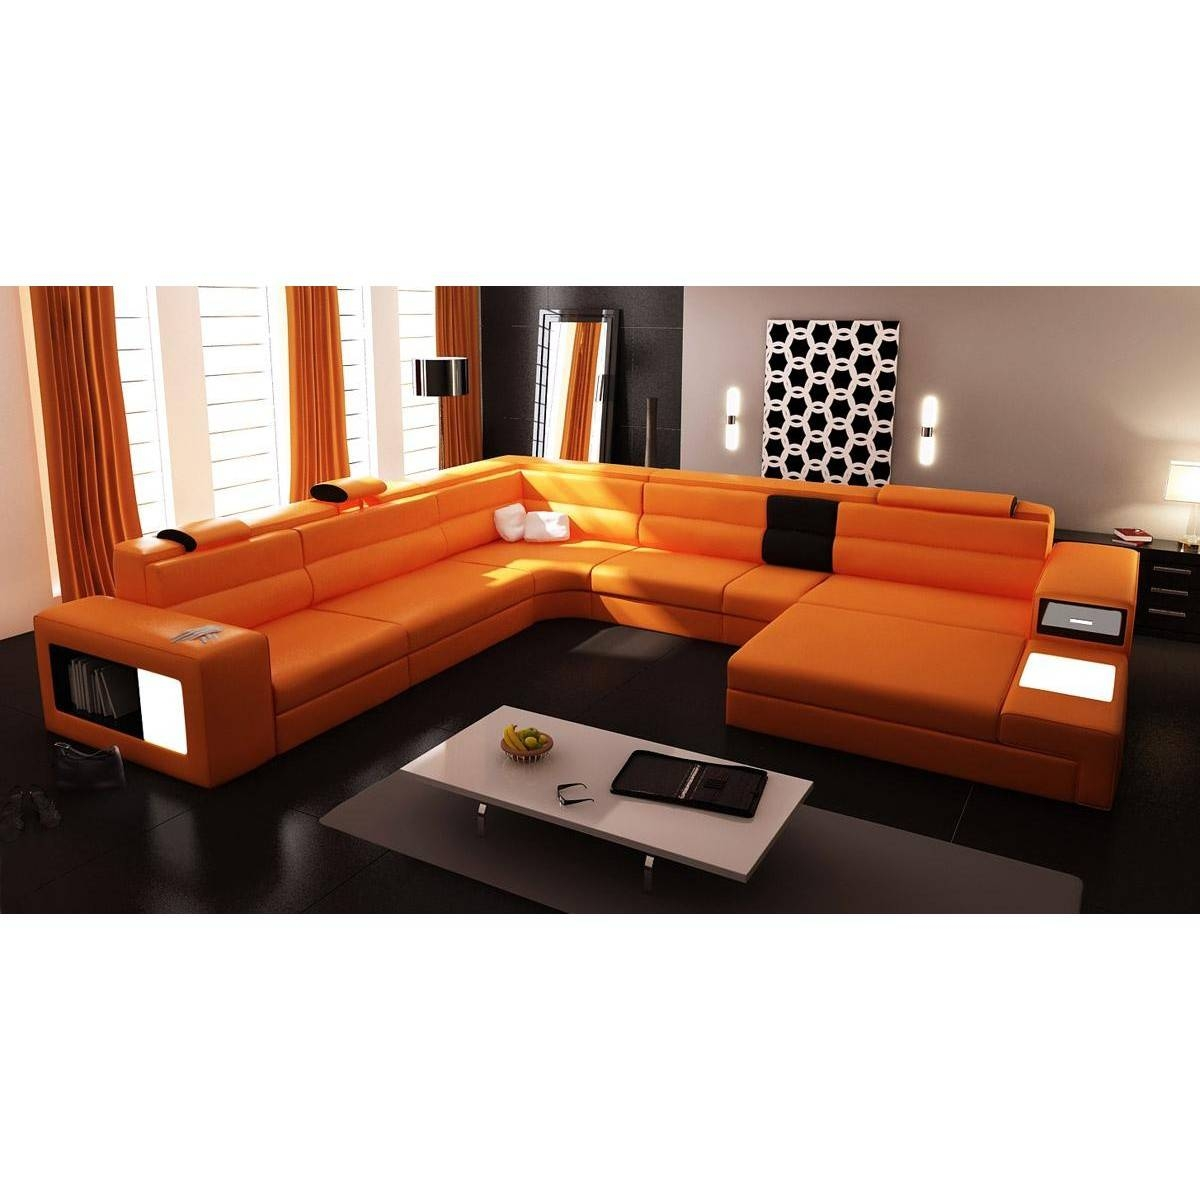 Contemporary & Luxury Furniture; Living Room, Bedroom,la Furniture For Orange Sectional Sofa (View 14 of 30)